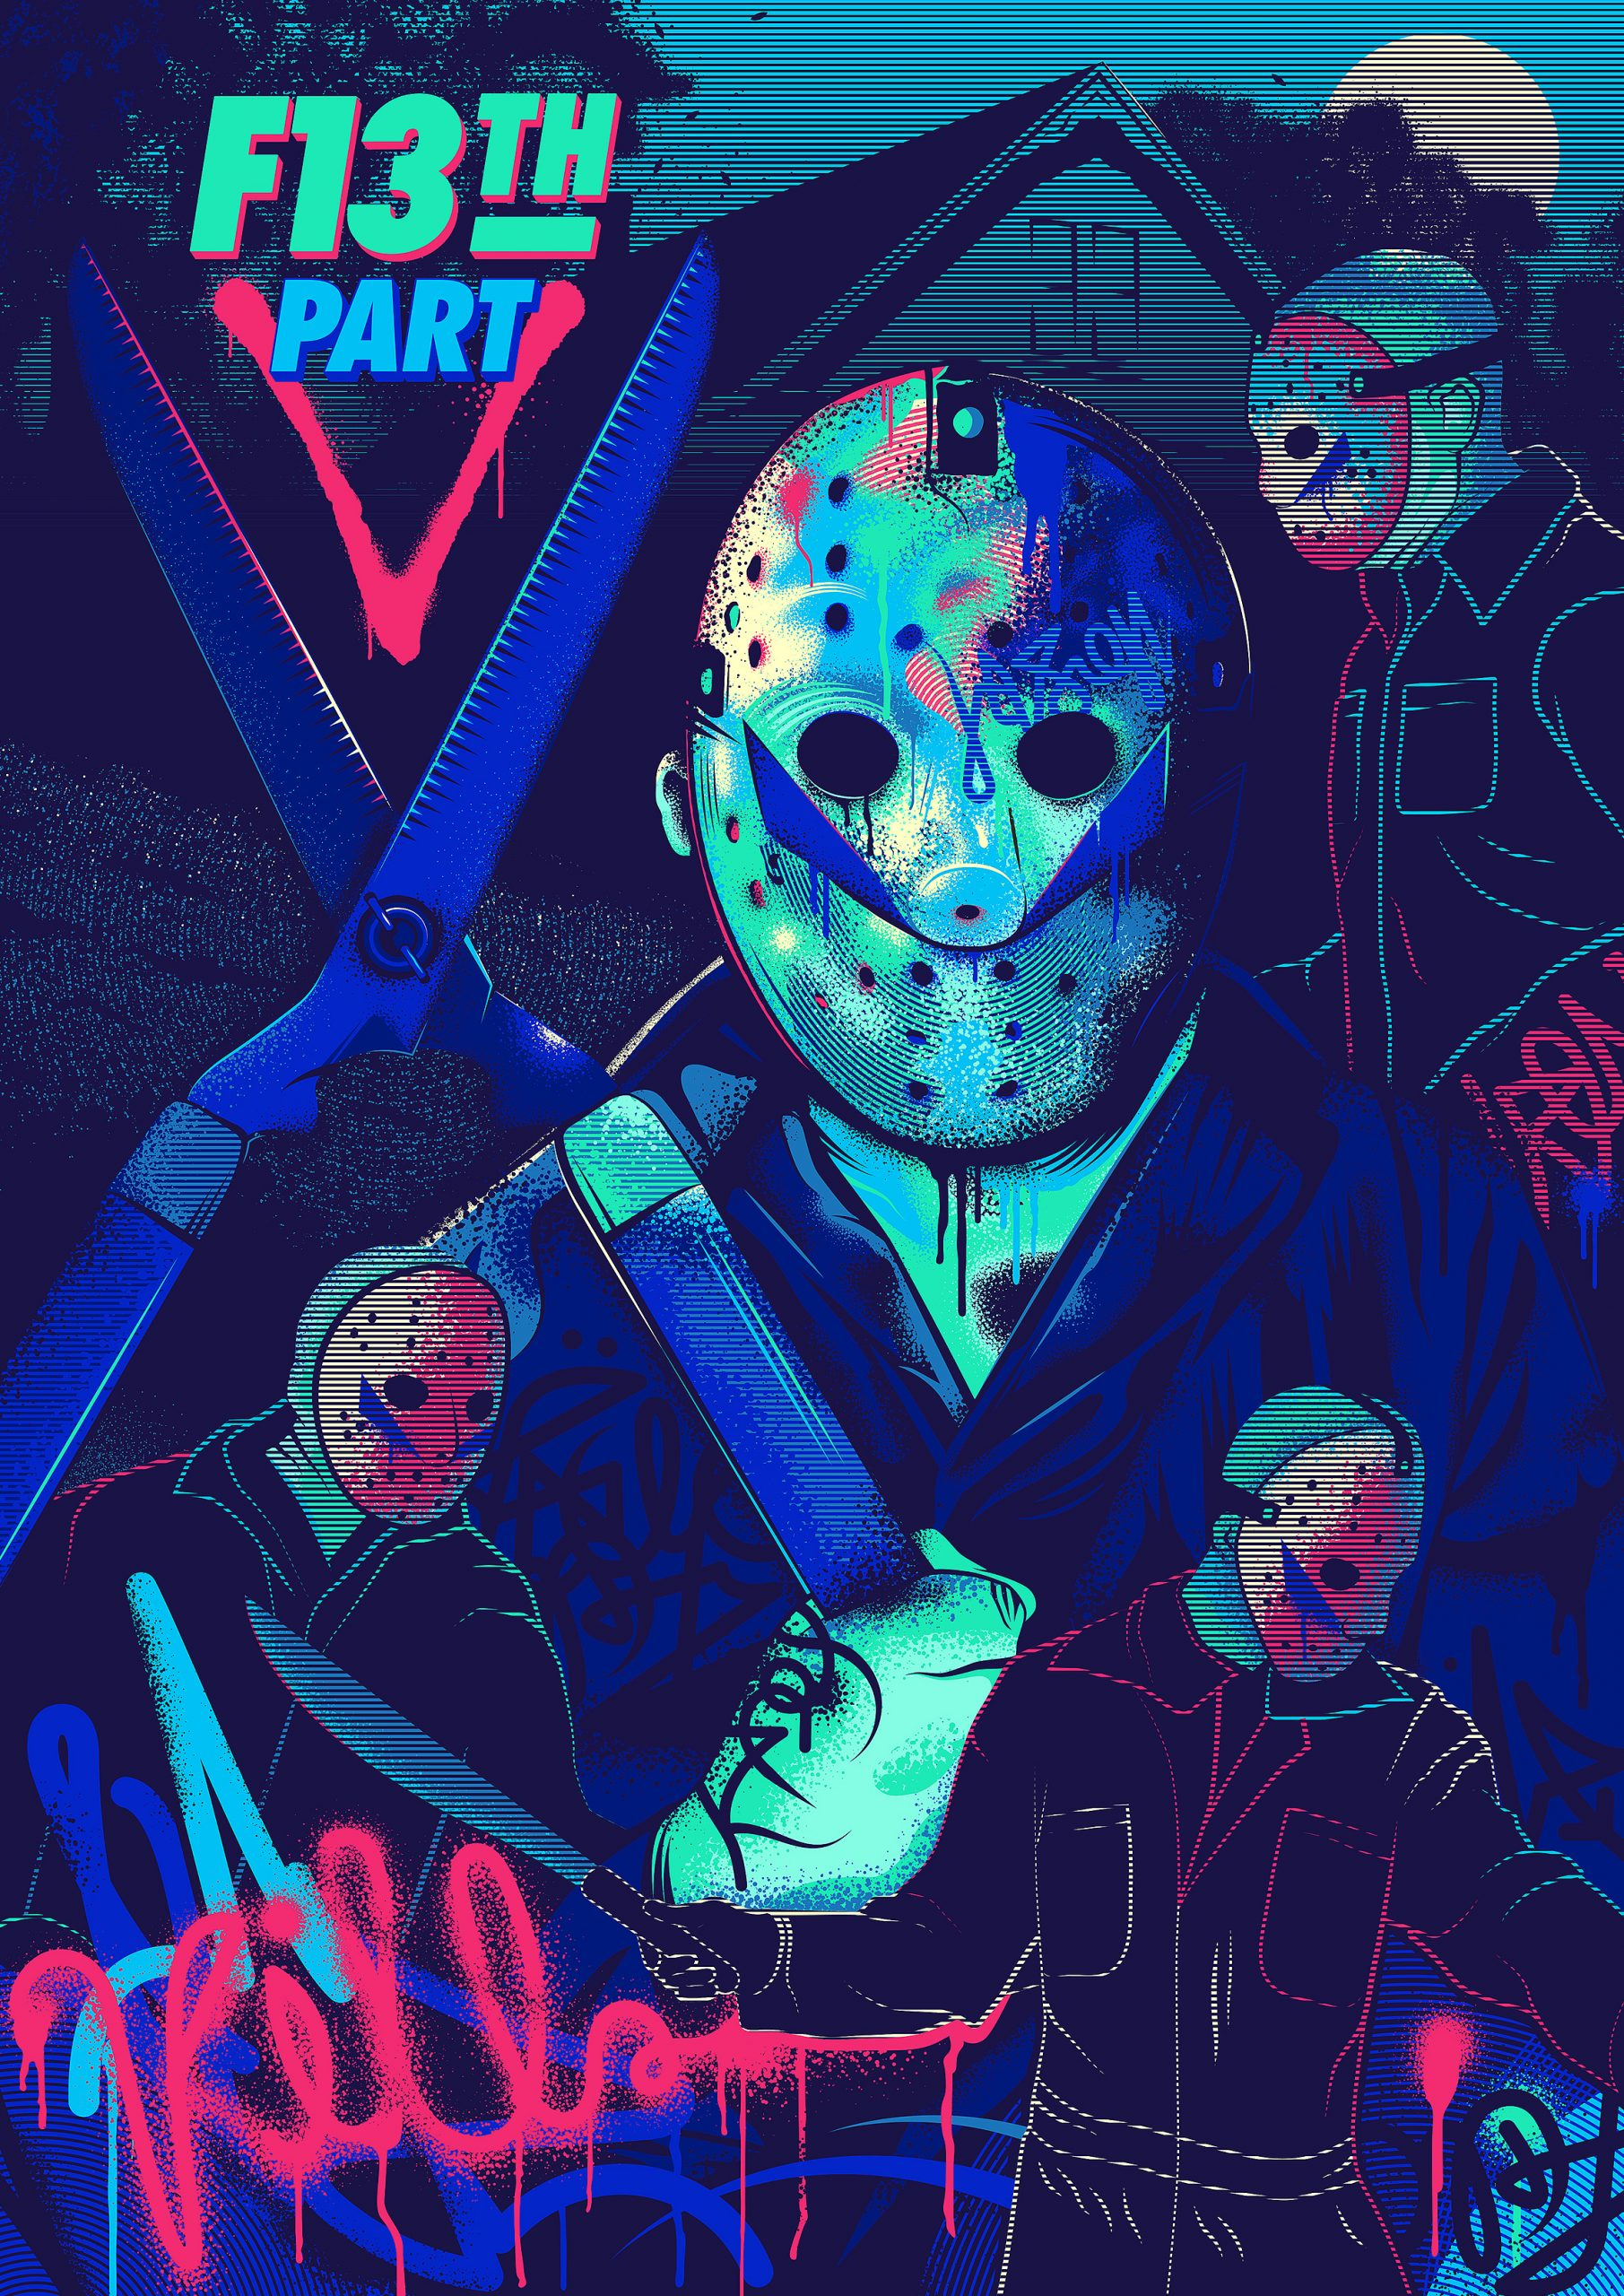 Friday the 13th: Part 5 - Alternative movie poster